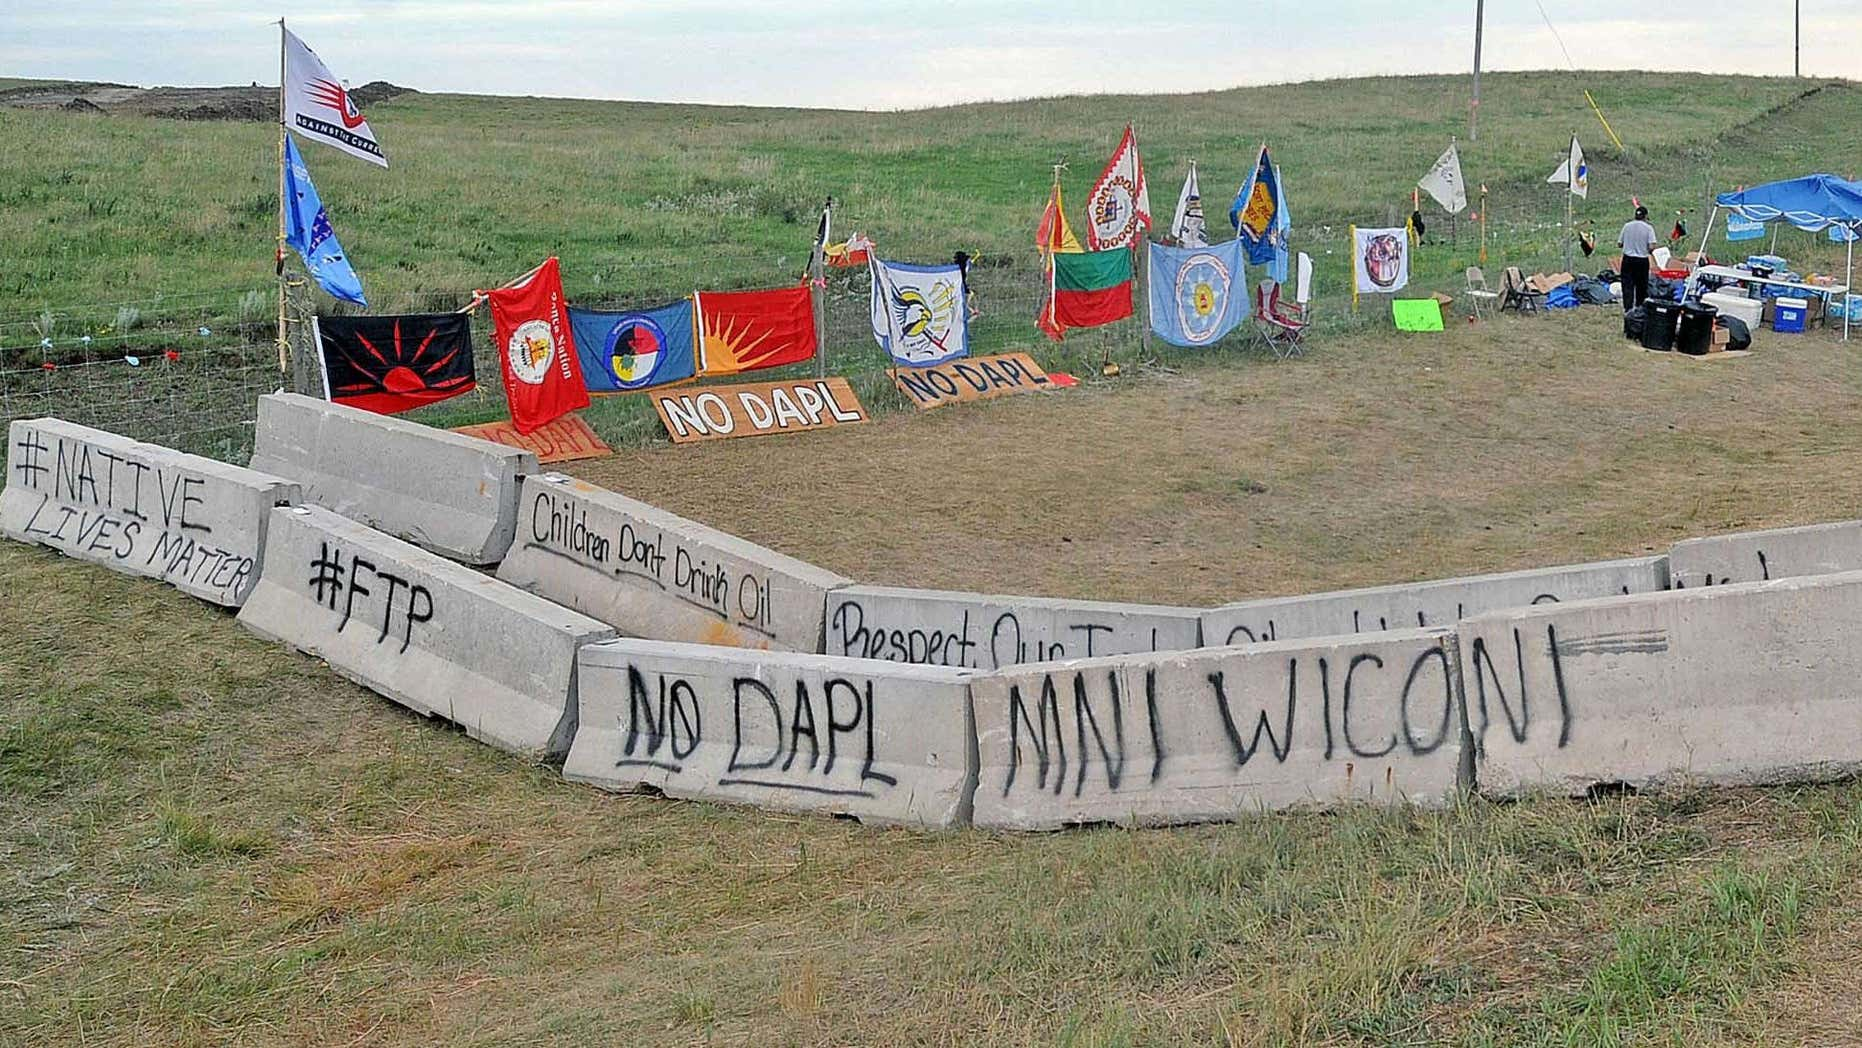 Aug. 18, 2016: The protest site along North Dakota Highway 1806 was quiet and nearly empty of people.